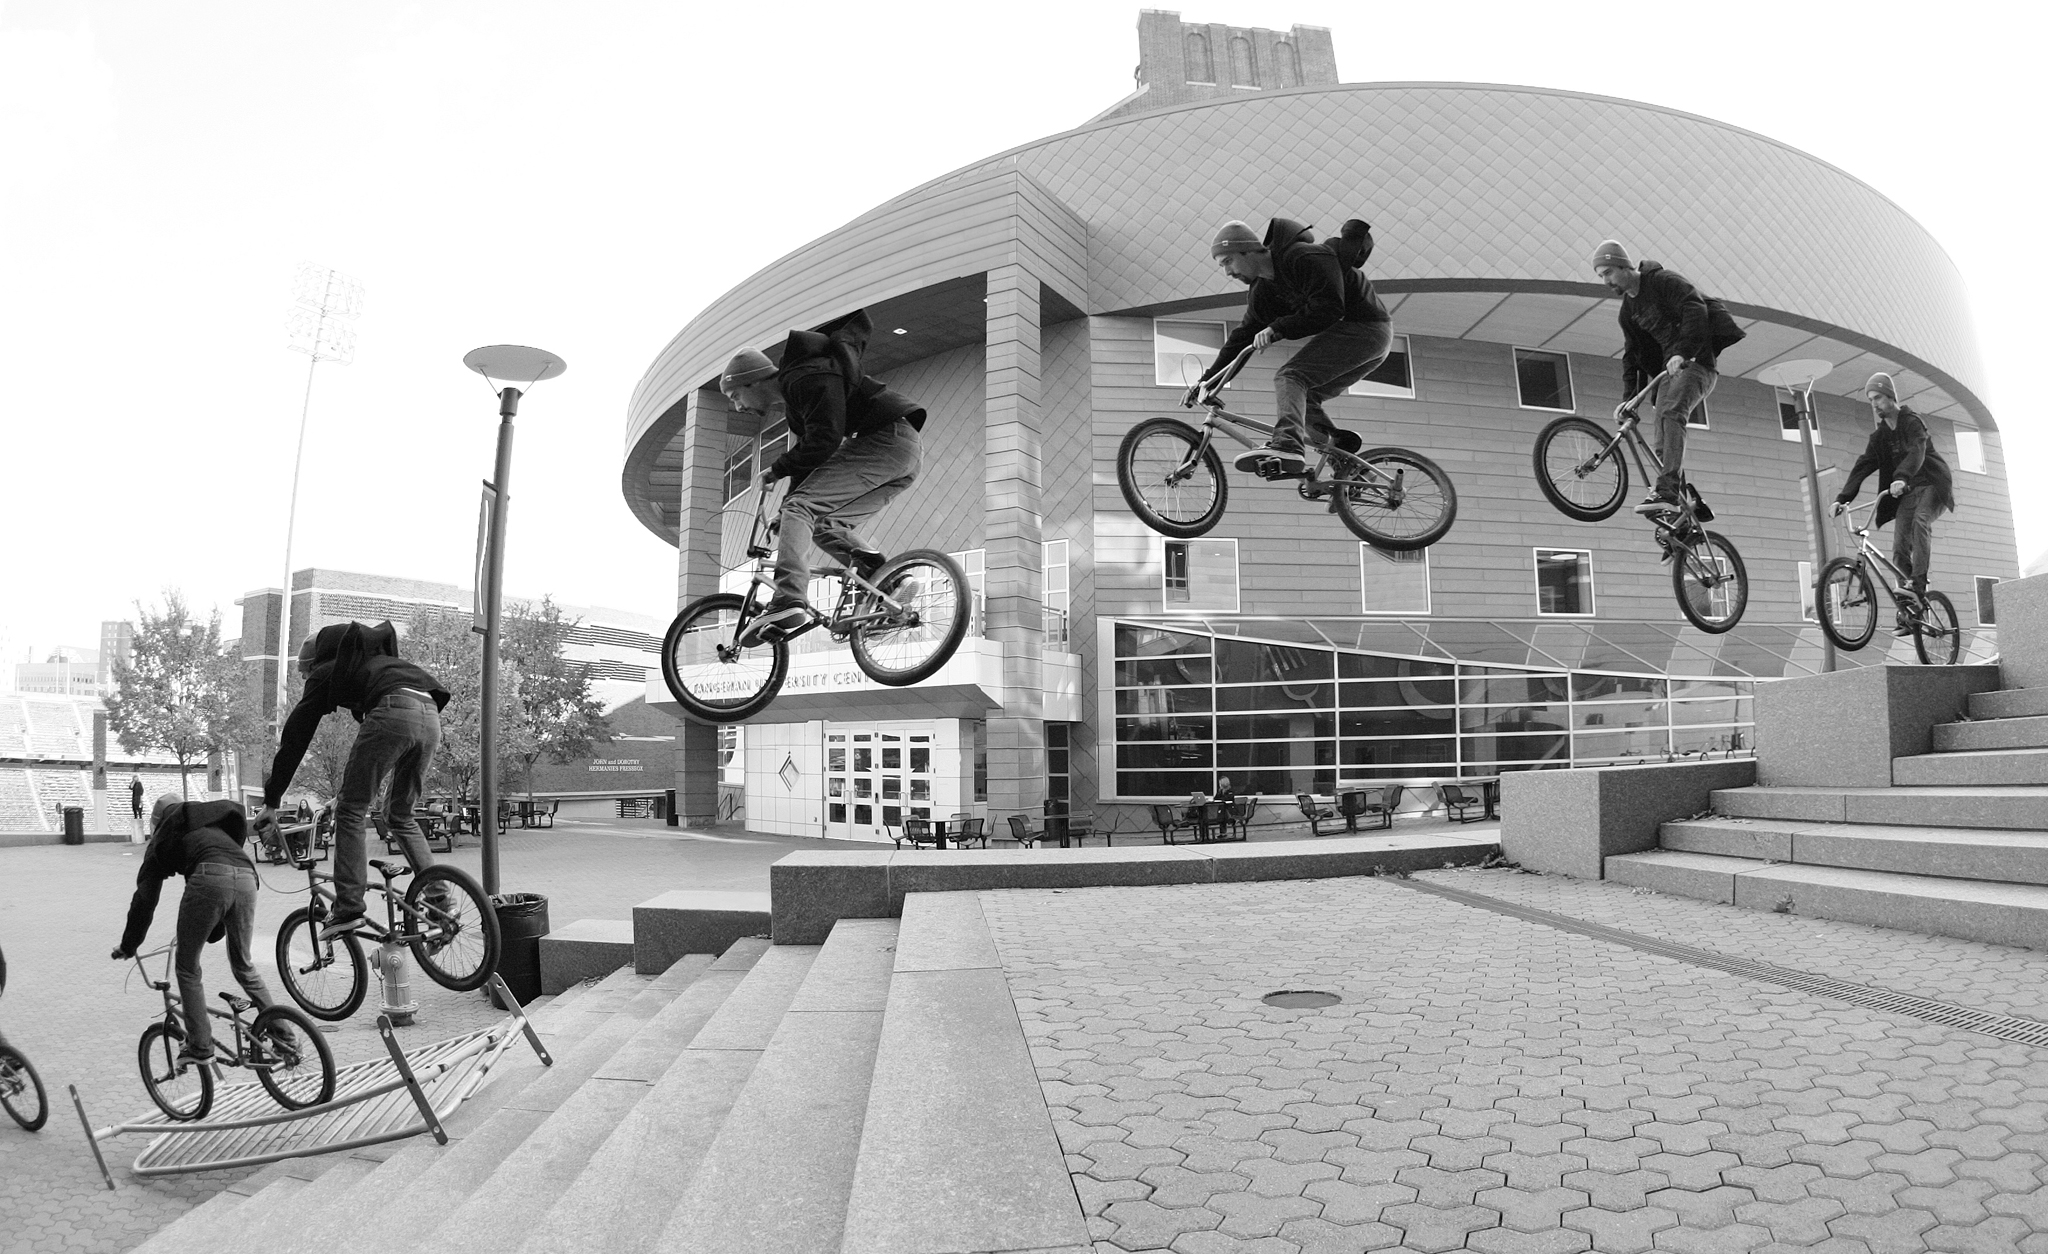 /photo/2012/1227/as_bmx_cody7_2048.jpg